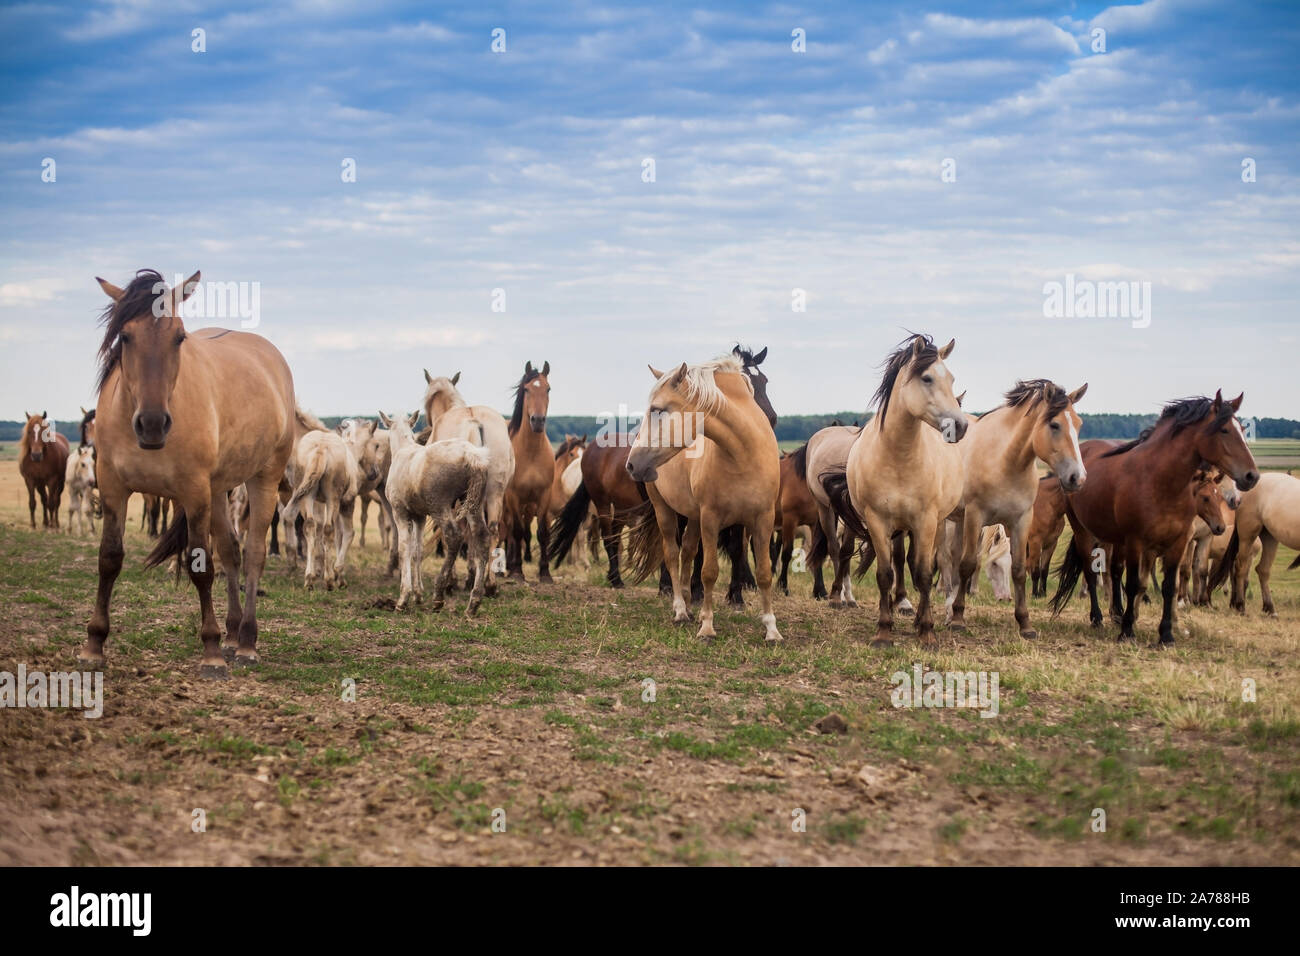 A Herd Of Wild Horses Run Across The Field A Large Herd Of Beautiful Horses Gallops Across The Field In Summer Stock Photo Alamy